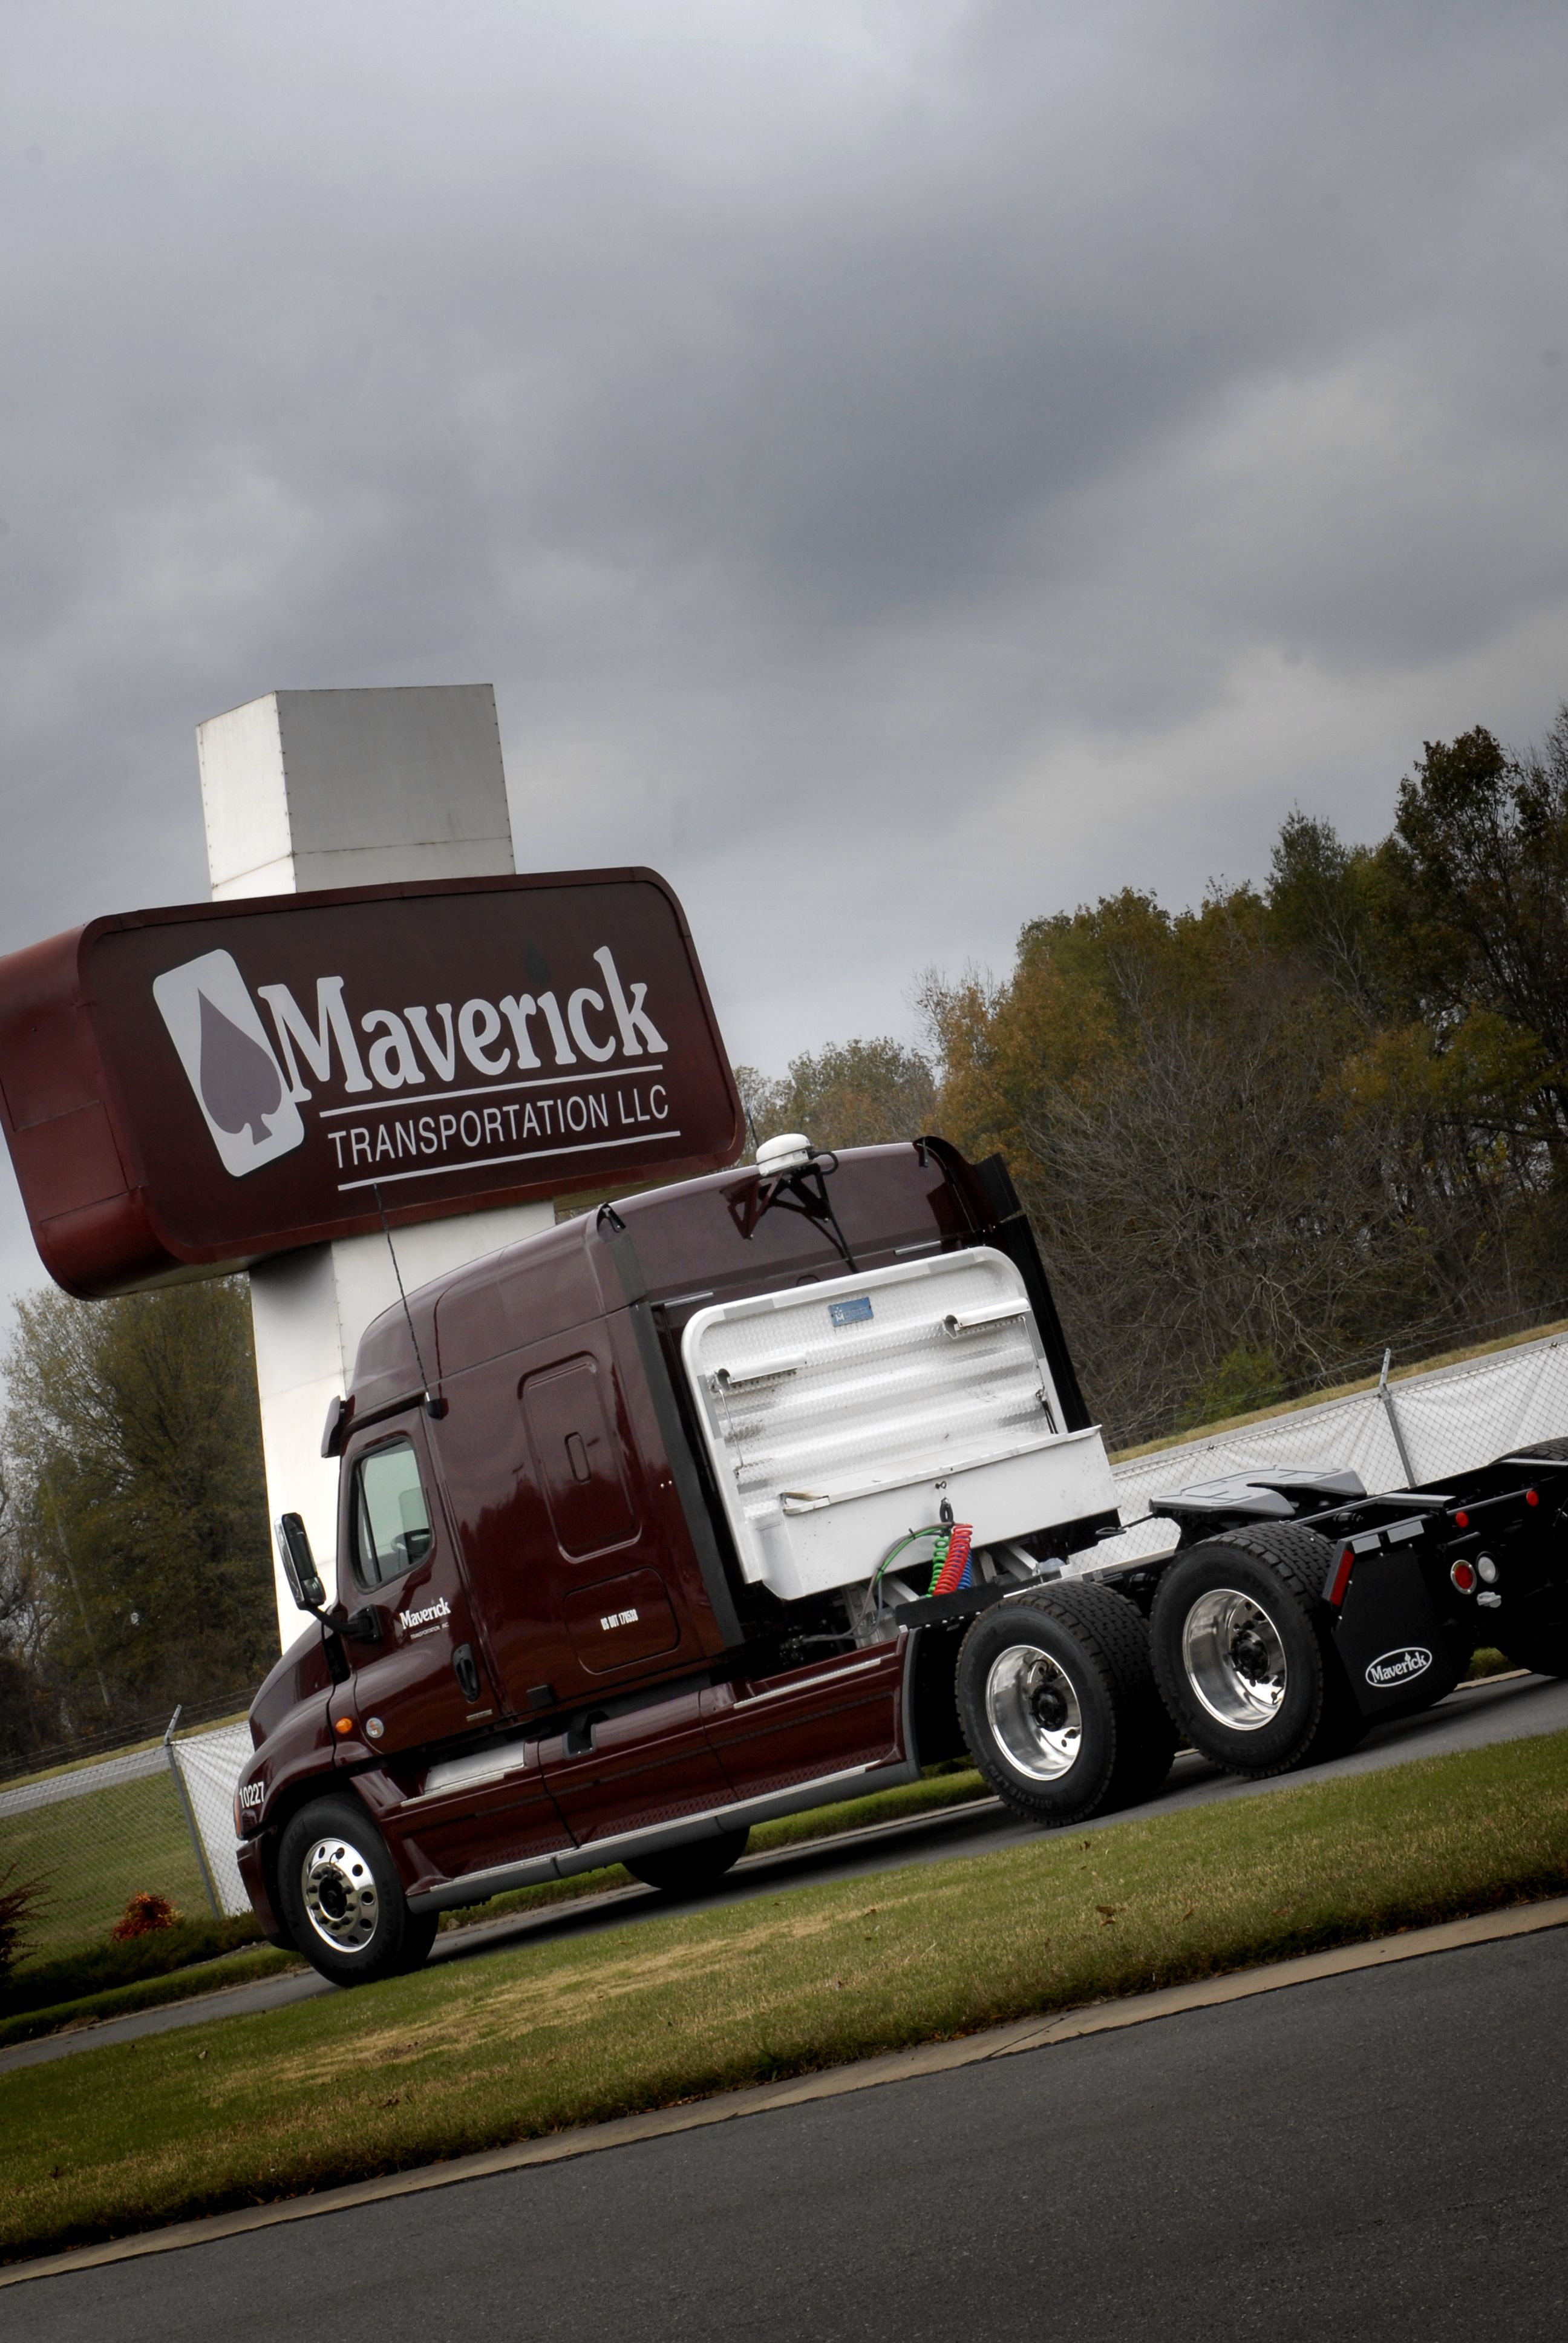 Williams started maverick transportation with just one truck and a dream to change the face